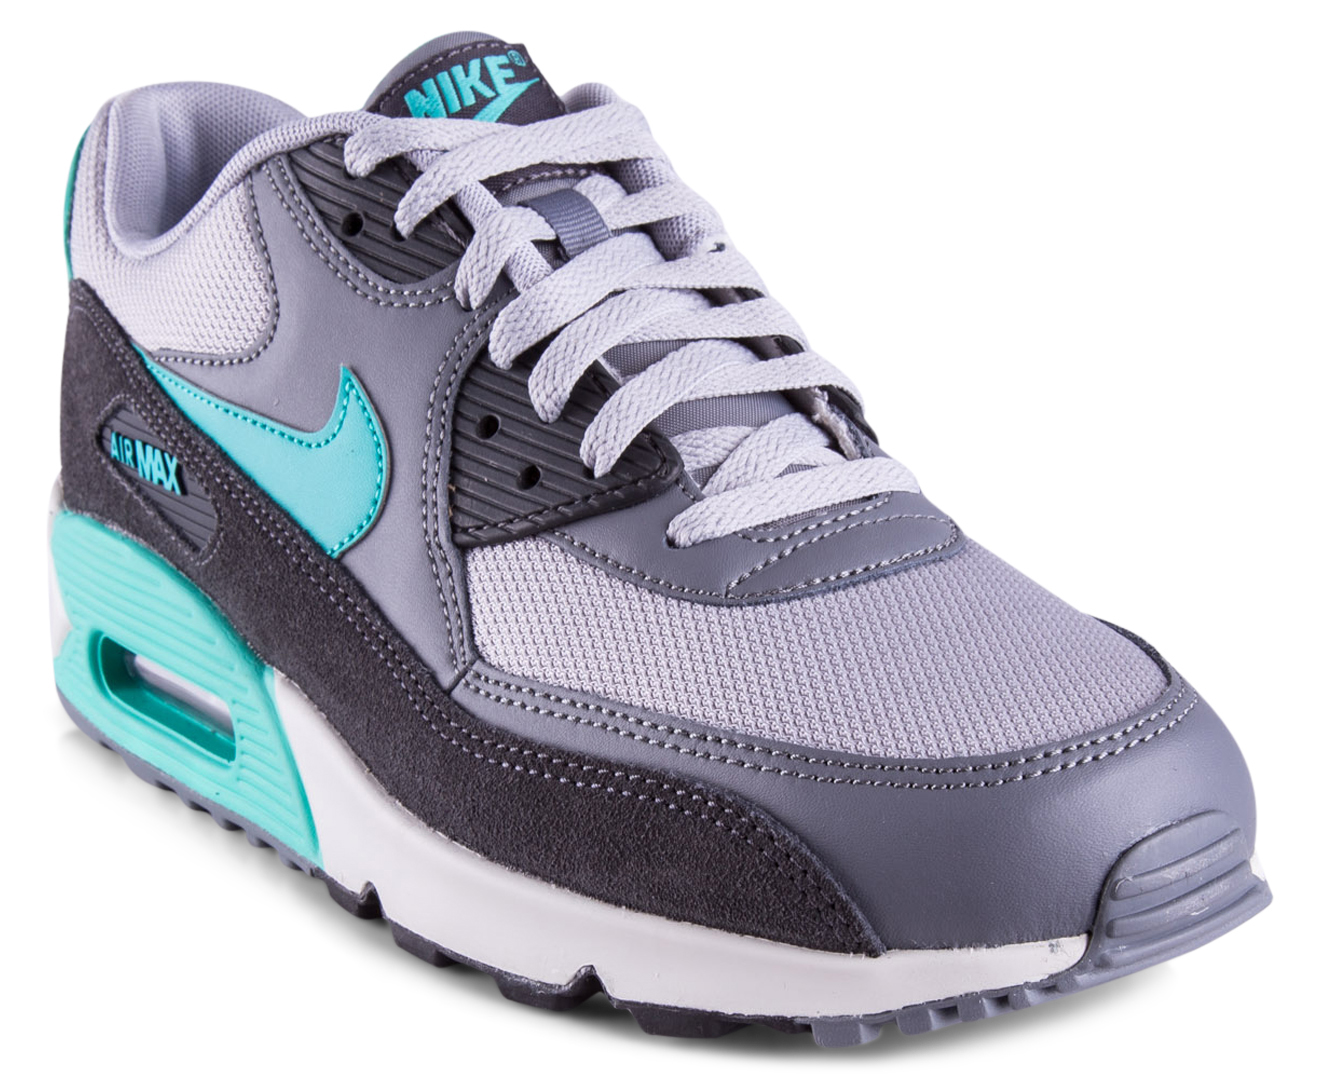 reputable site 7f04b b4523 Nike Men's Air Max 90 Essential Shoe - Wolf Grey/Hyper Jade | Catch.com.au